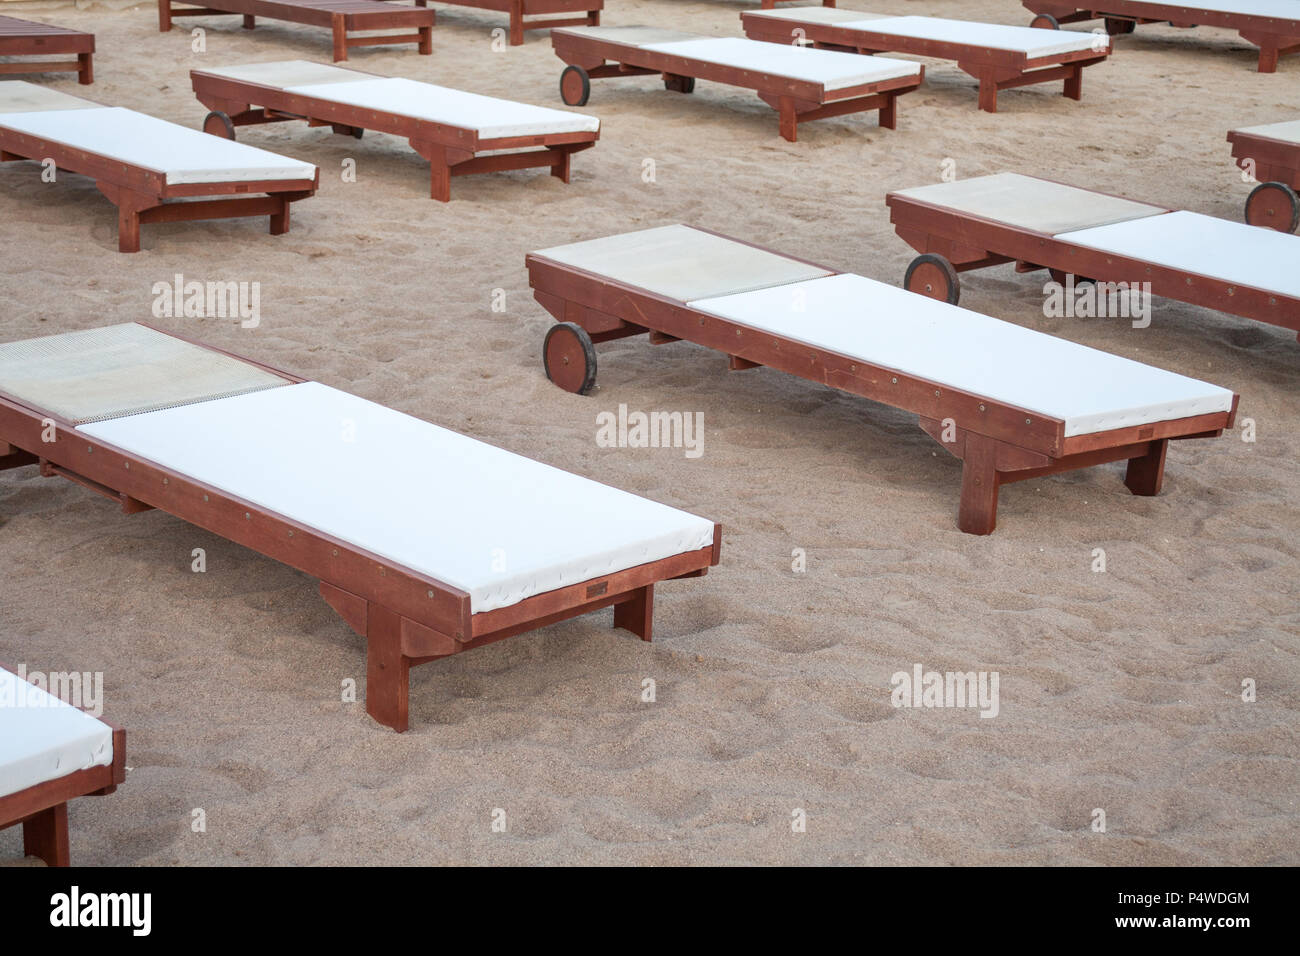 A relaxing beds fix in the sand. A flat structure filled with comfy fabric attracting tourist for body massage. Wellness therapy ideas for beach goers - Stock Image